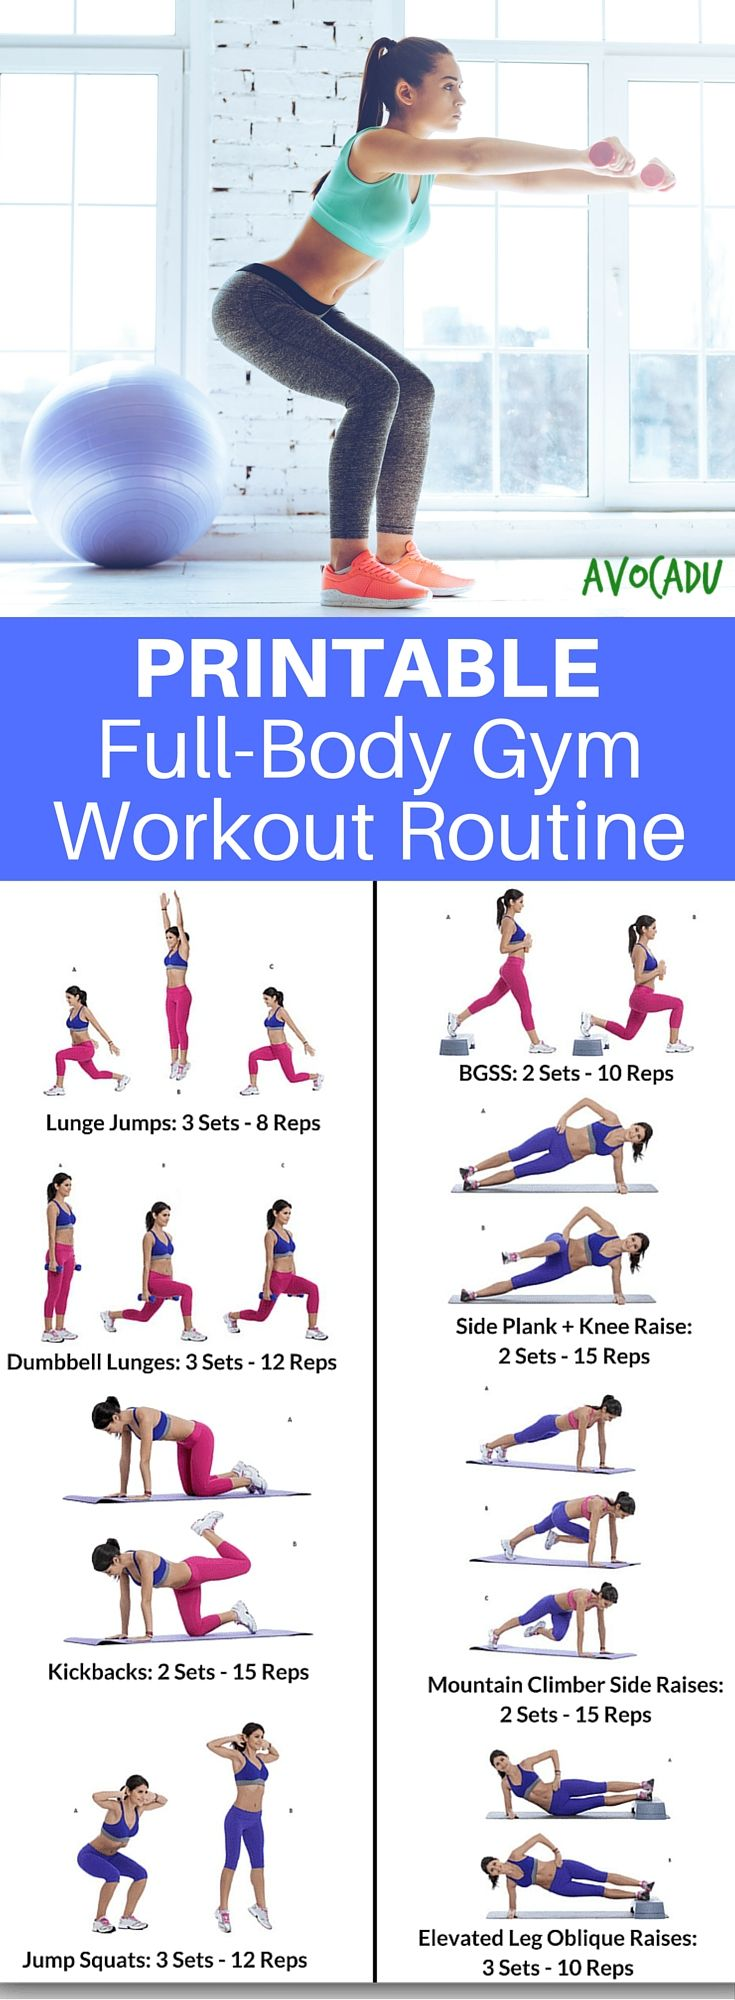 8 Week Full Body Gym Workout Routine